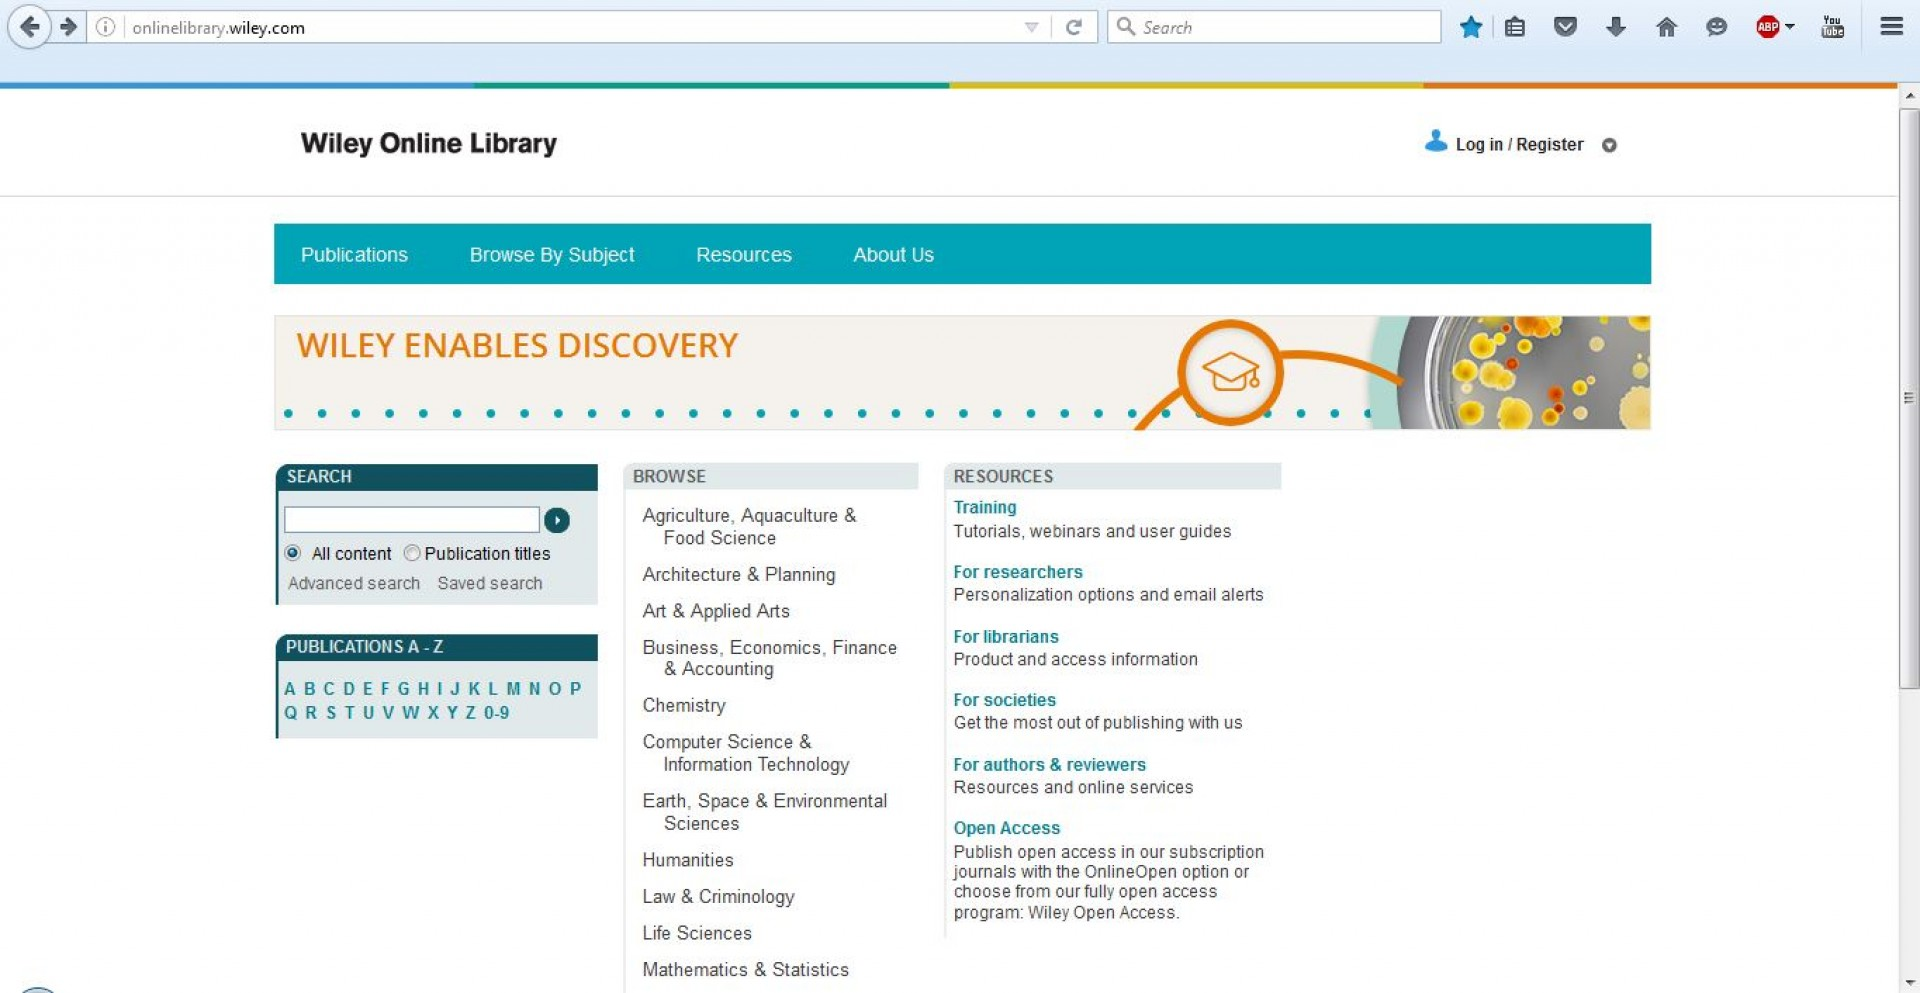 002 Research Paper Best Site To Get Free Papers Imposing How Download From Sciencedirect 1920